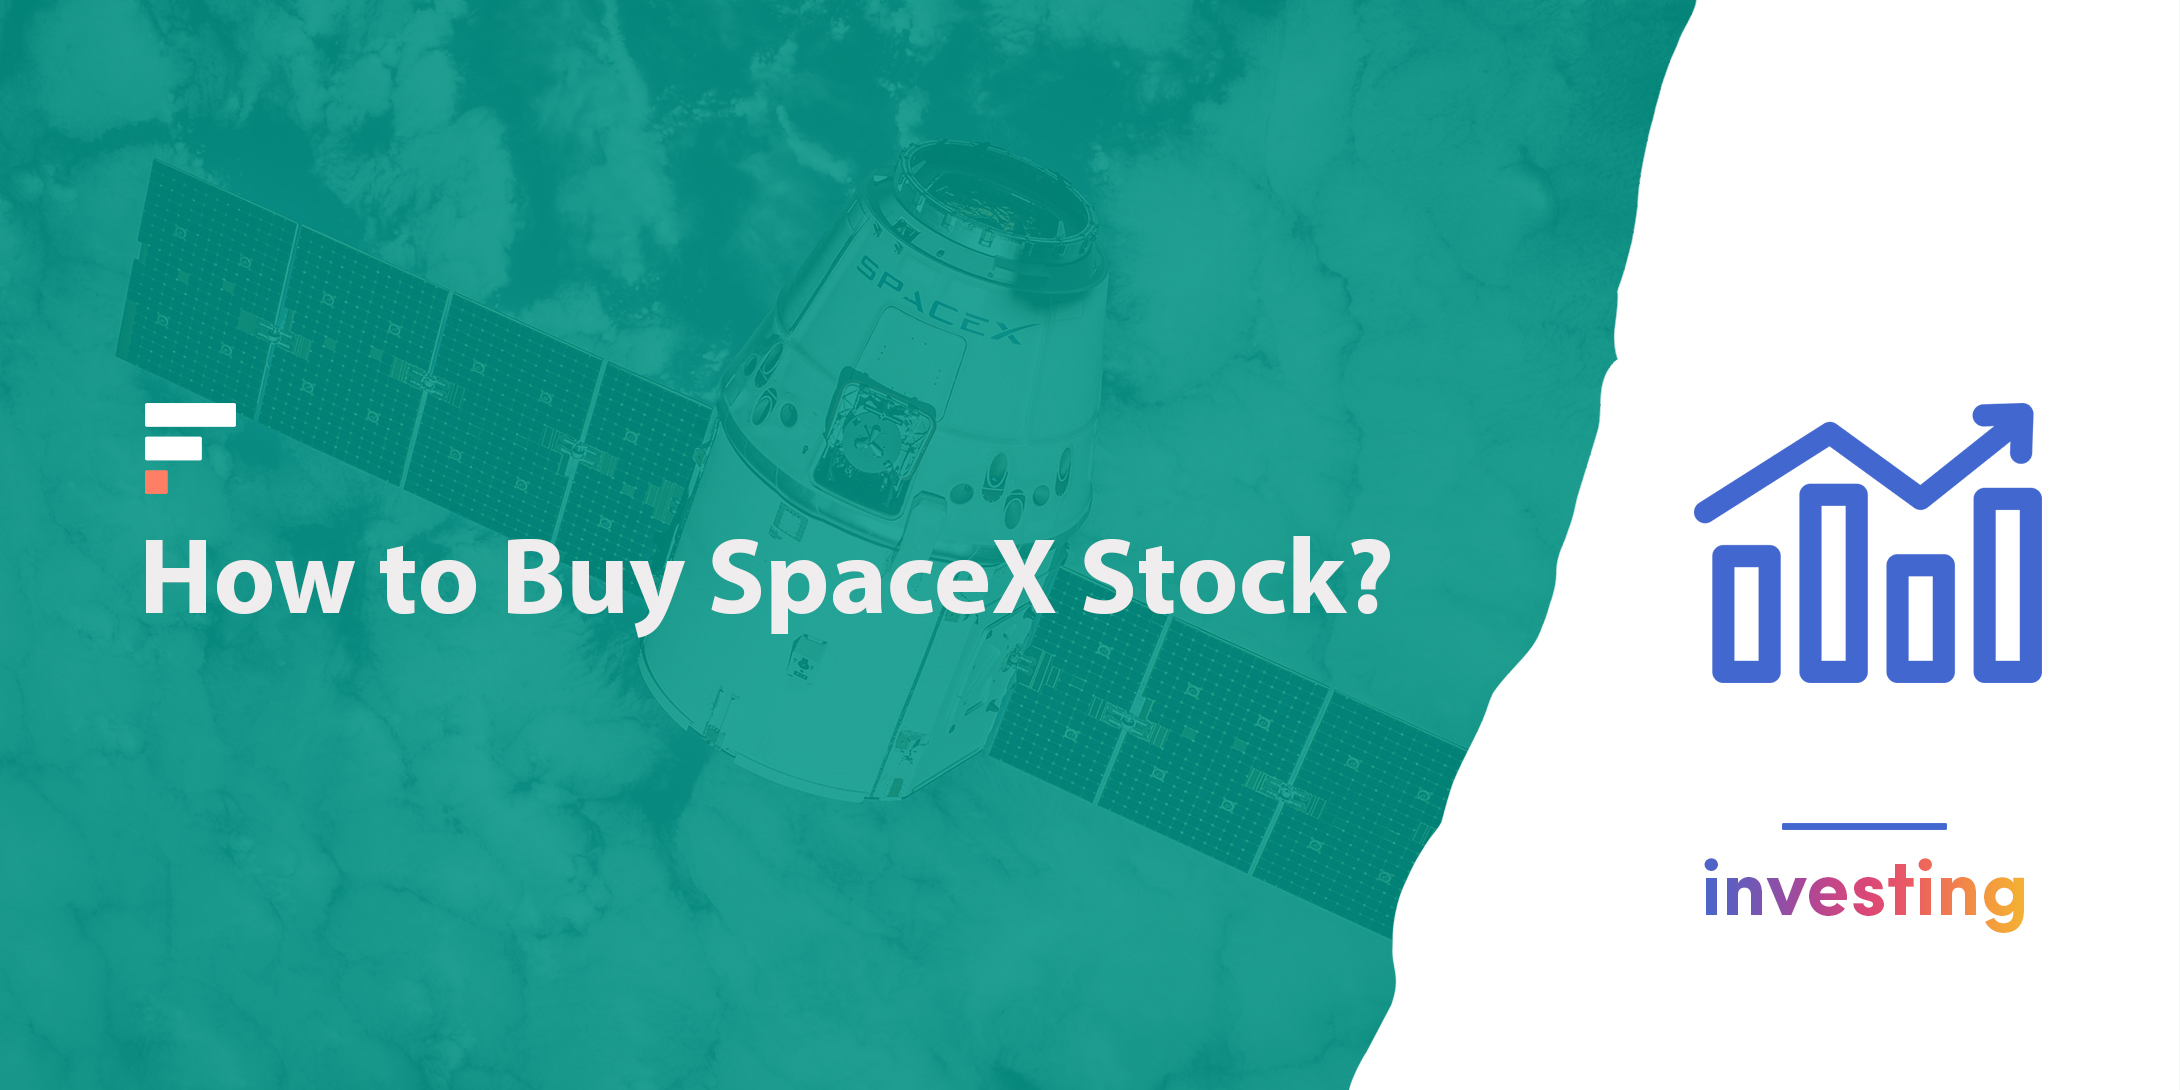 How to buy SpaceX stock?